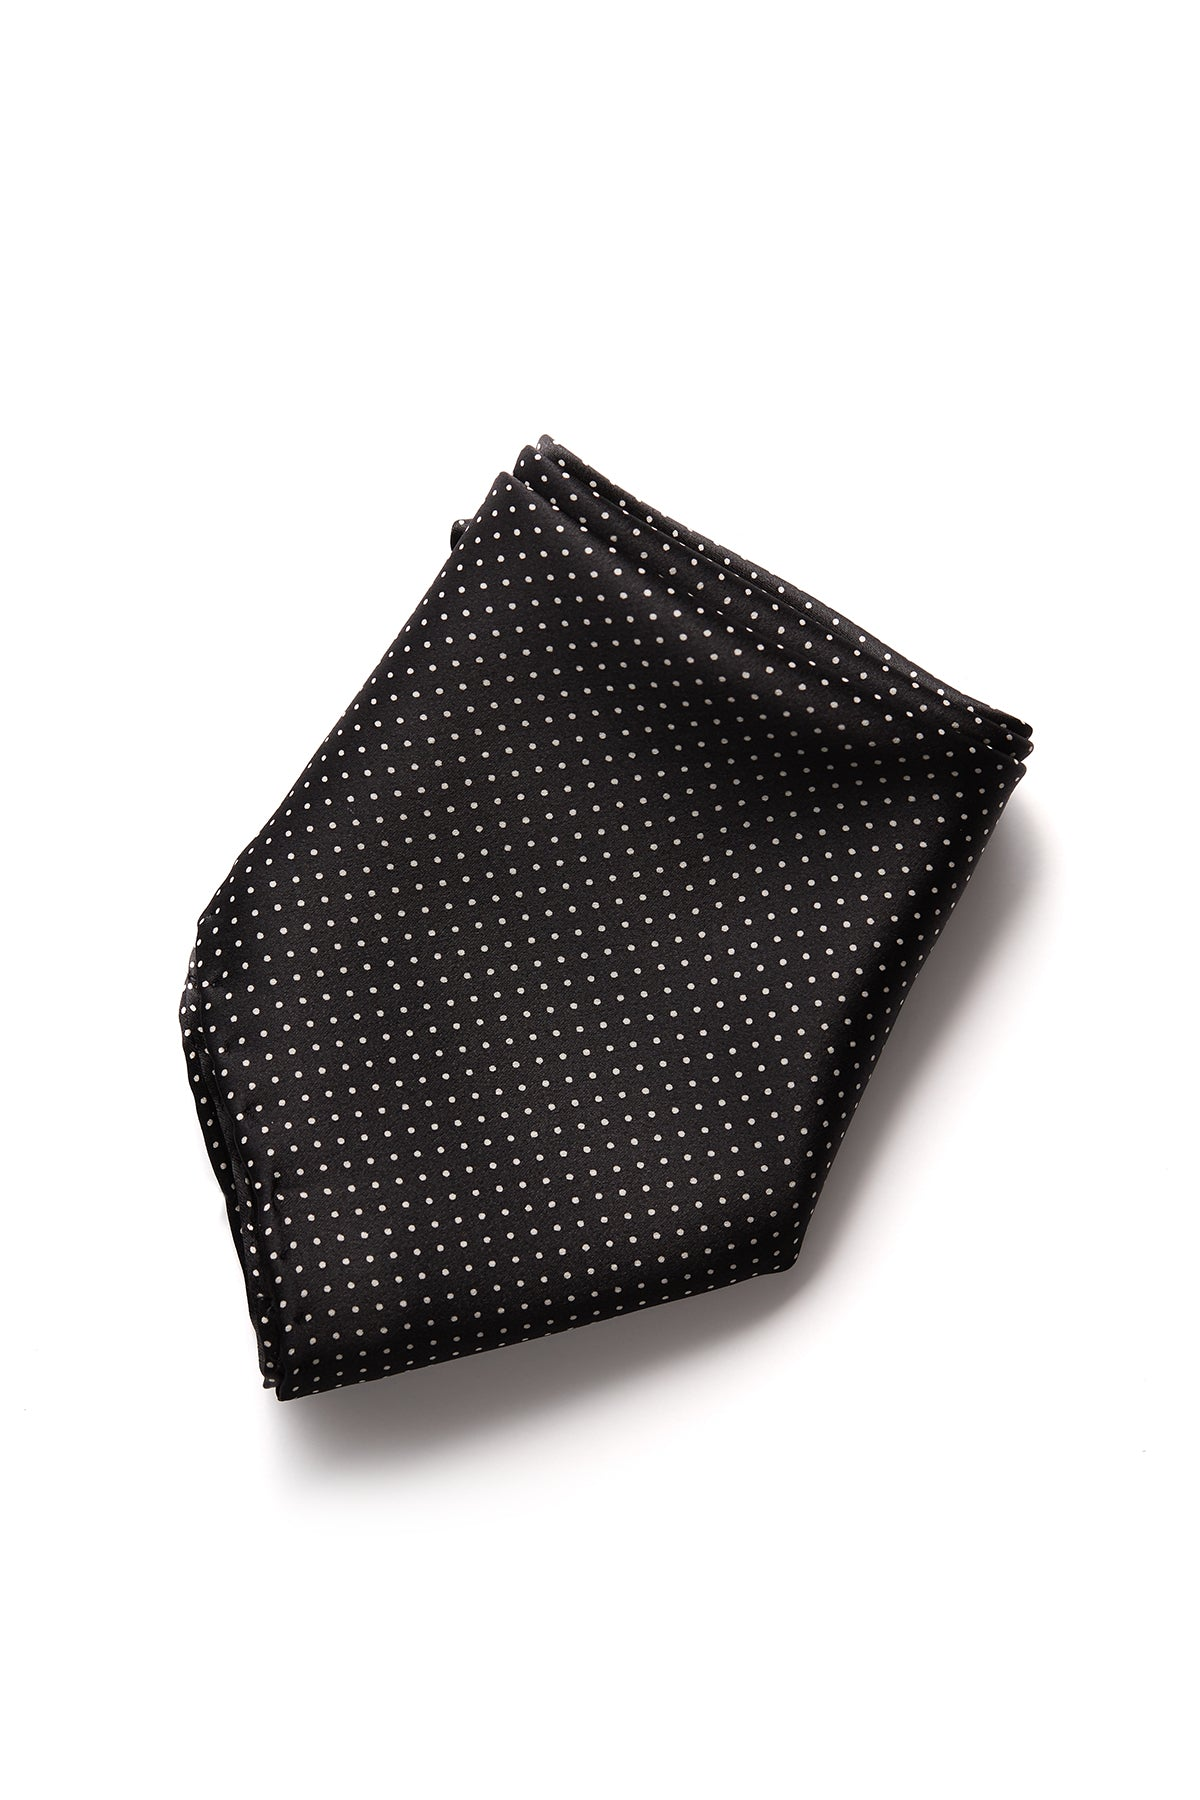 David August Black with White Polka-Dot Italian Silk Pocket Square